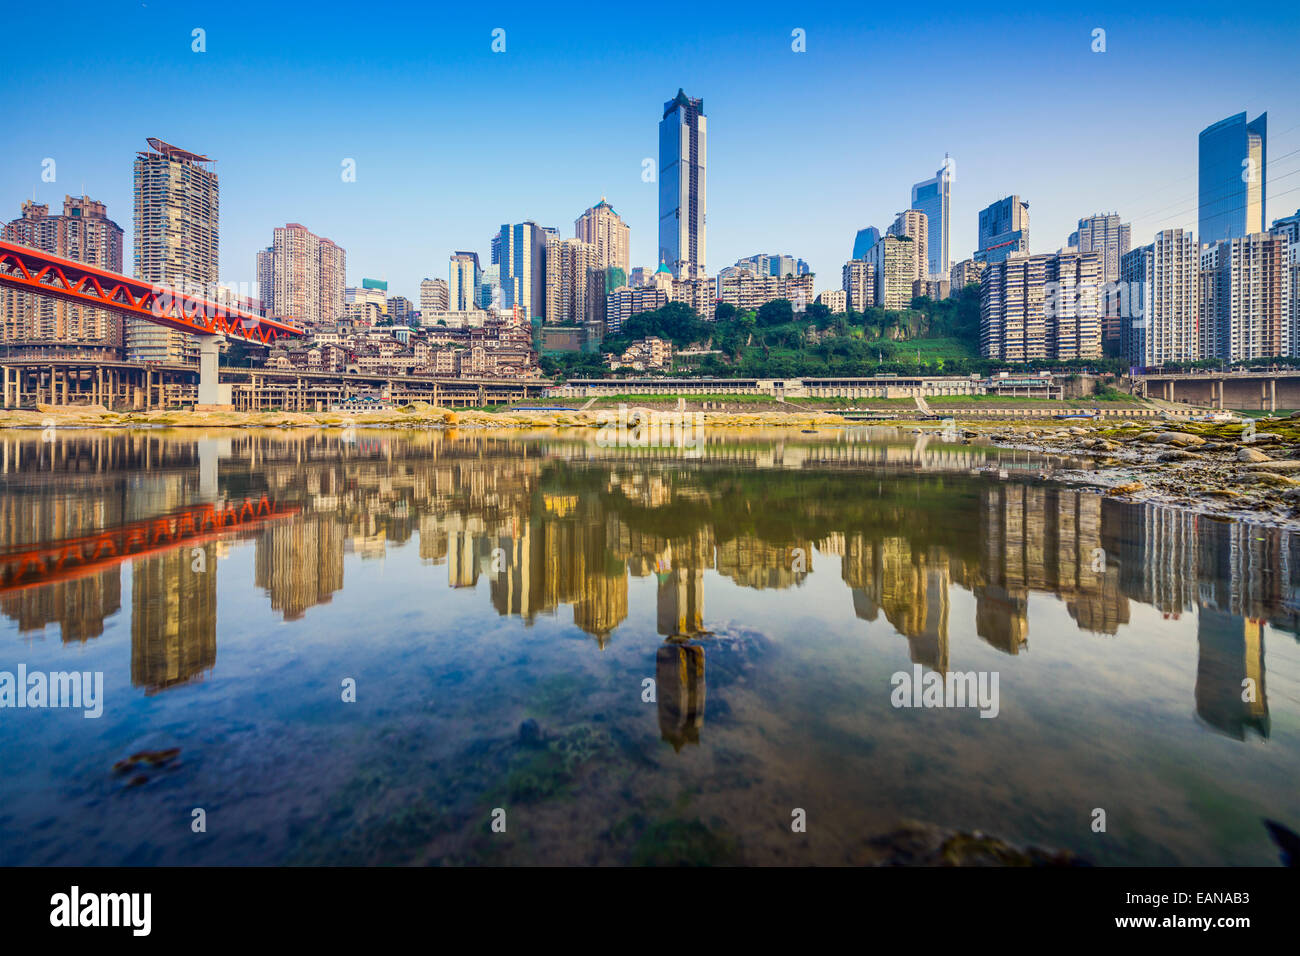 Chongqing, China city skyline on the Jialing River. - Stock Image